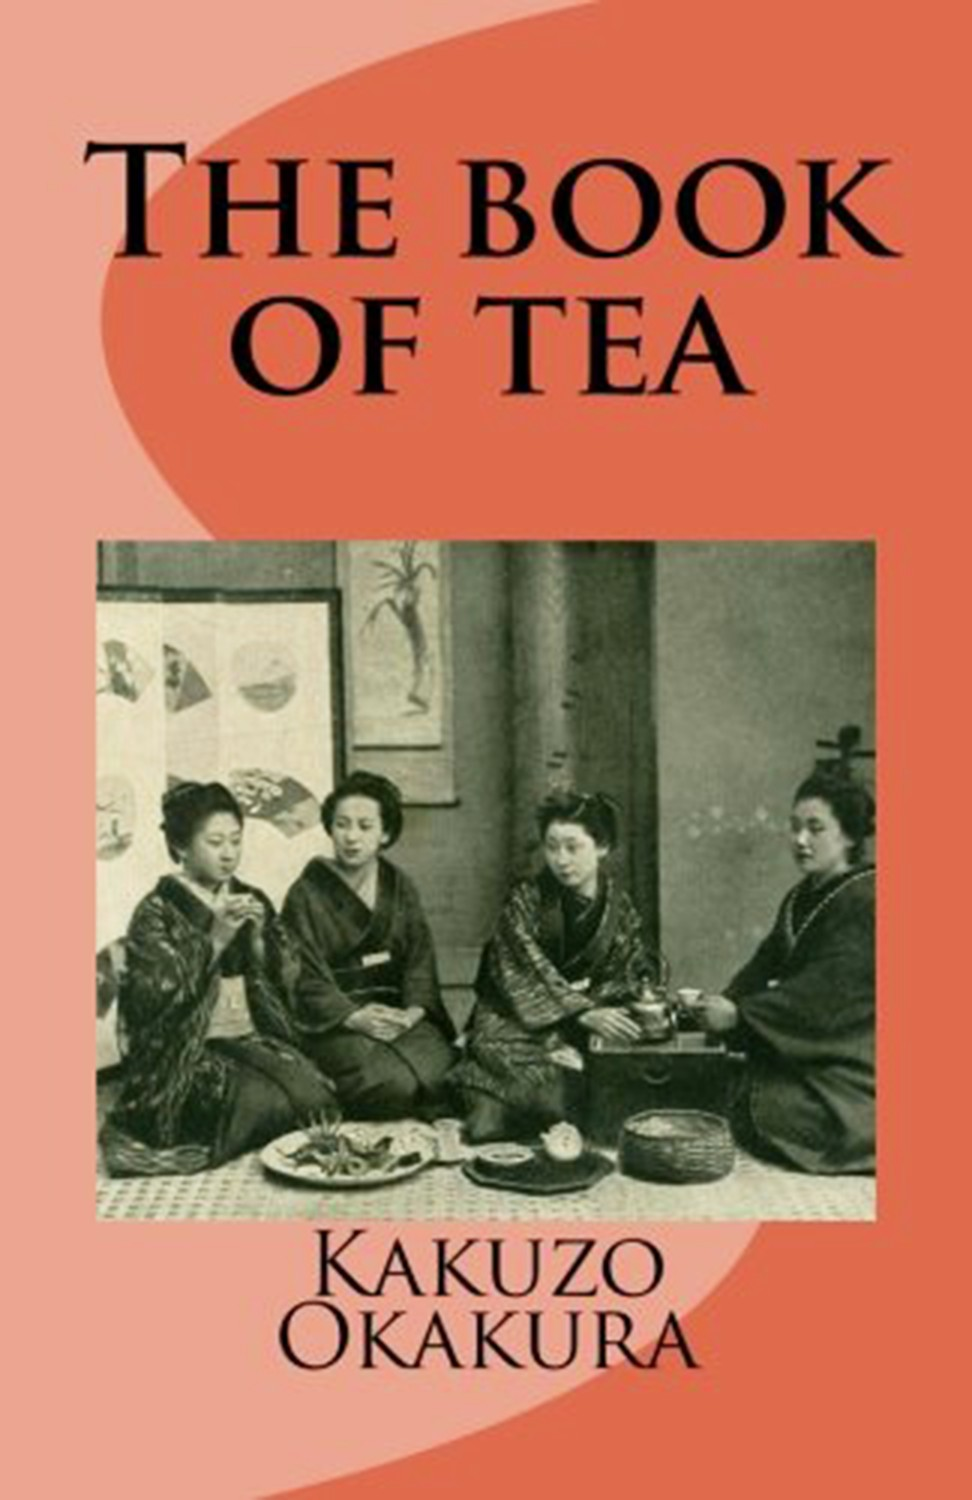 How The Book of Tea taught a curator to see the human behind the art